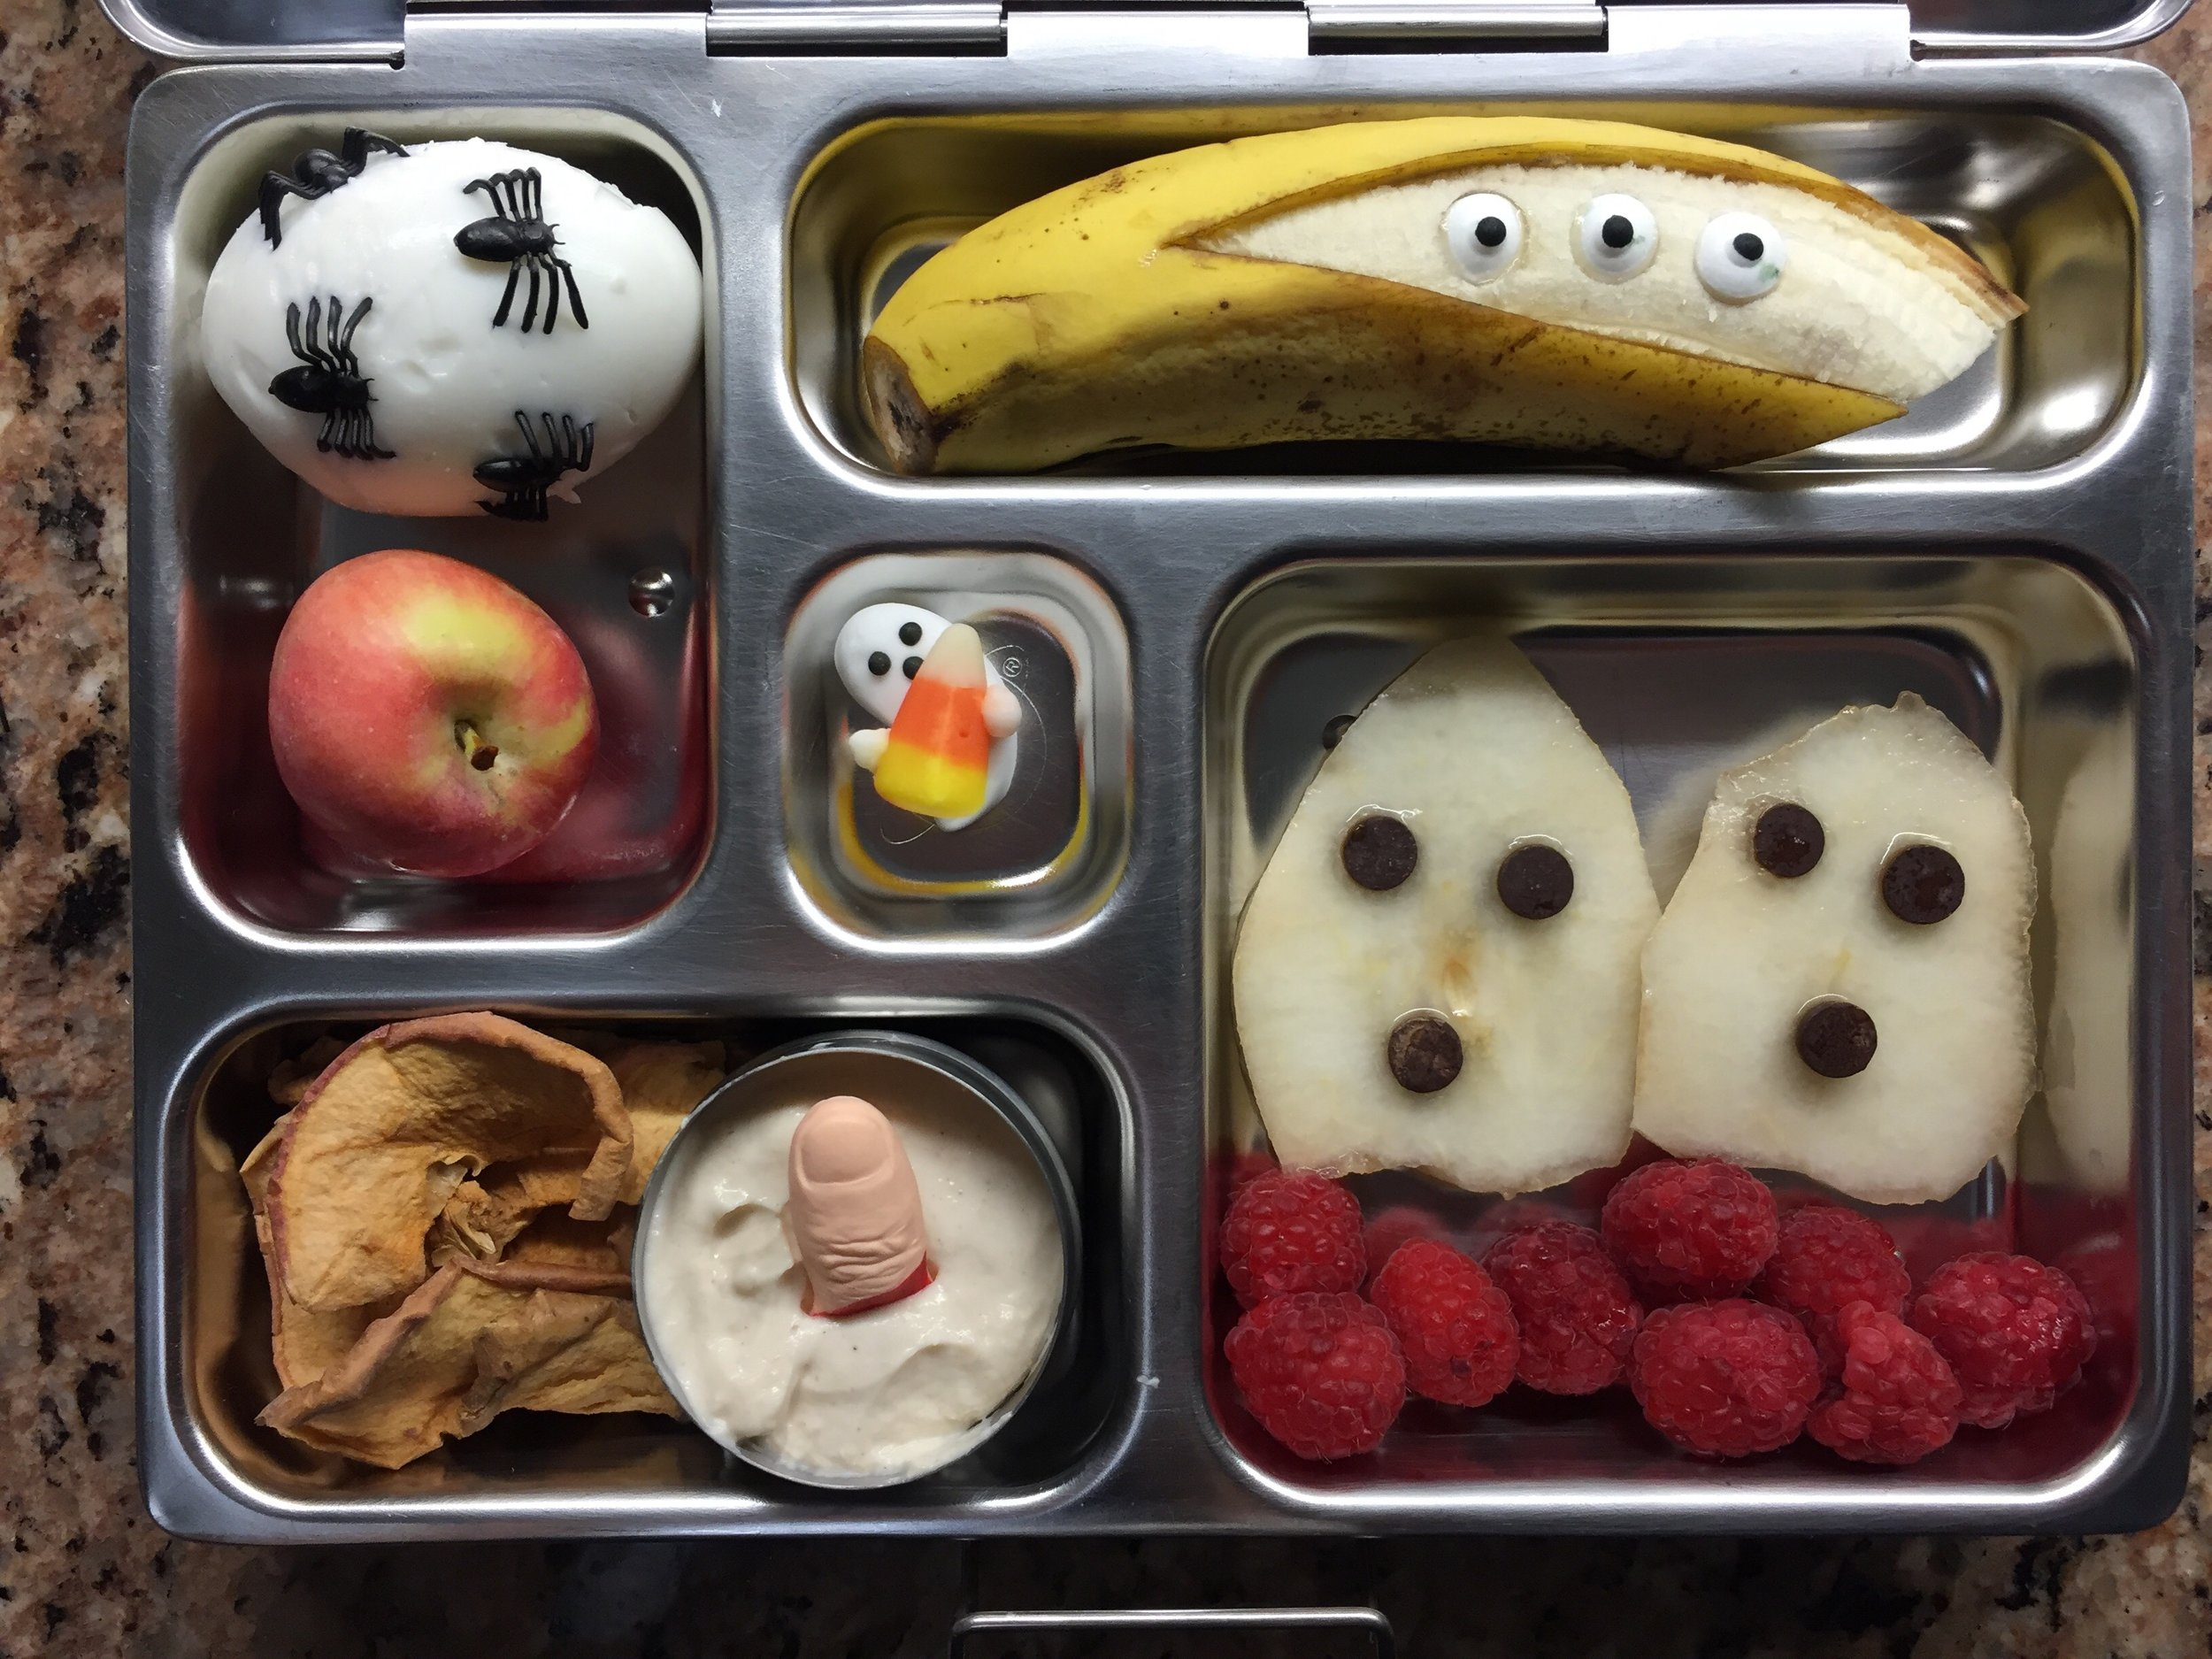 My personal fave: pear ghosts with berries, yogurt with a candy finger and dried apple, spider egg, banana ghost.